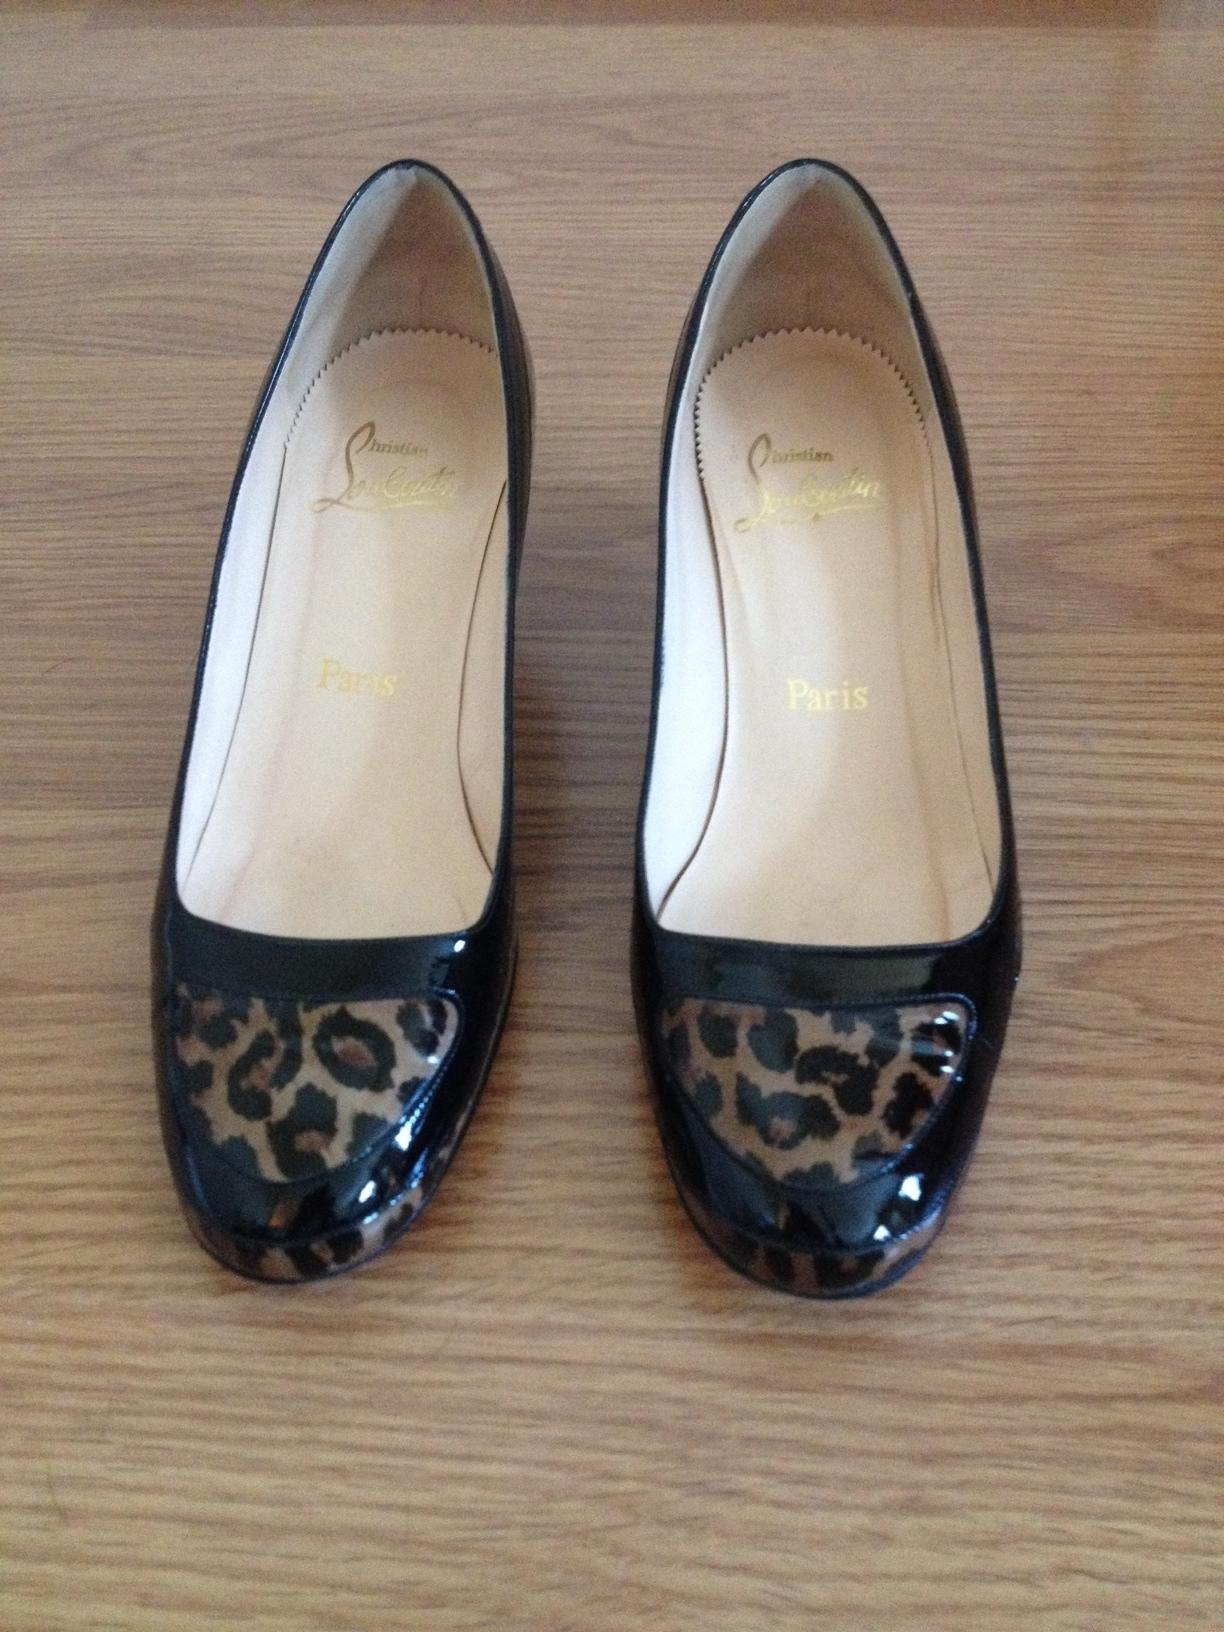 Christian Louboutin Black Patent and Leopard Patent No Pumps Size US 8 Regular (M, B)